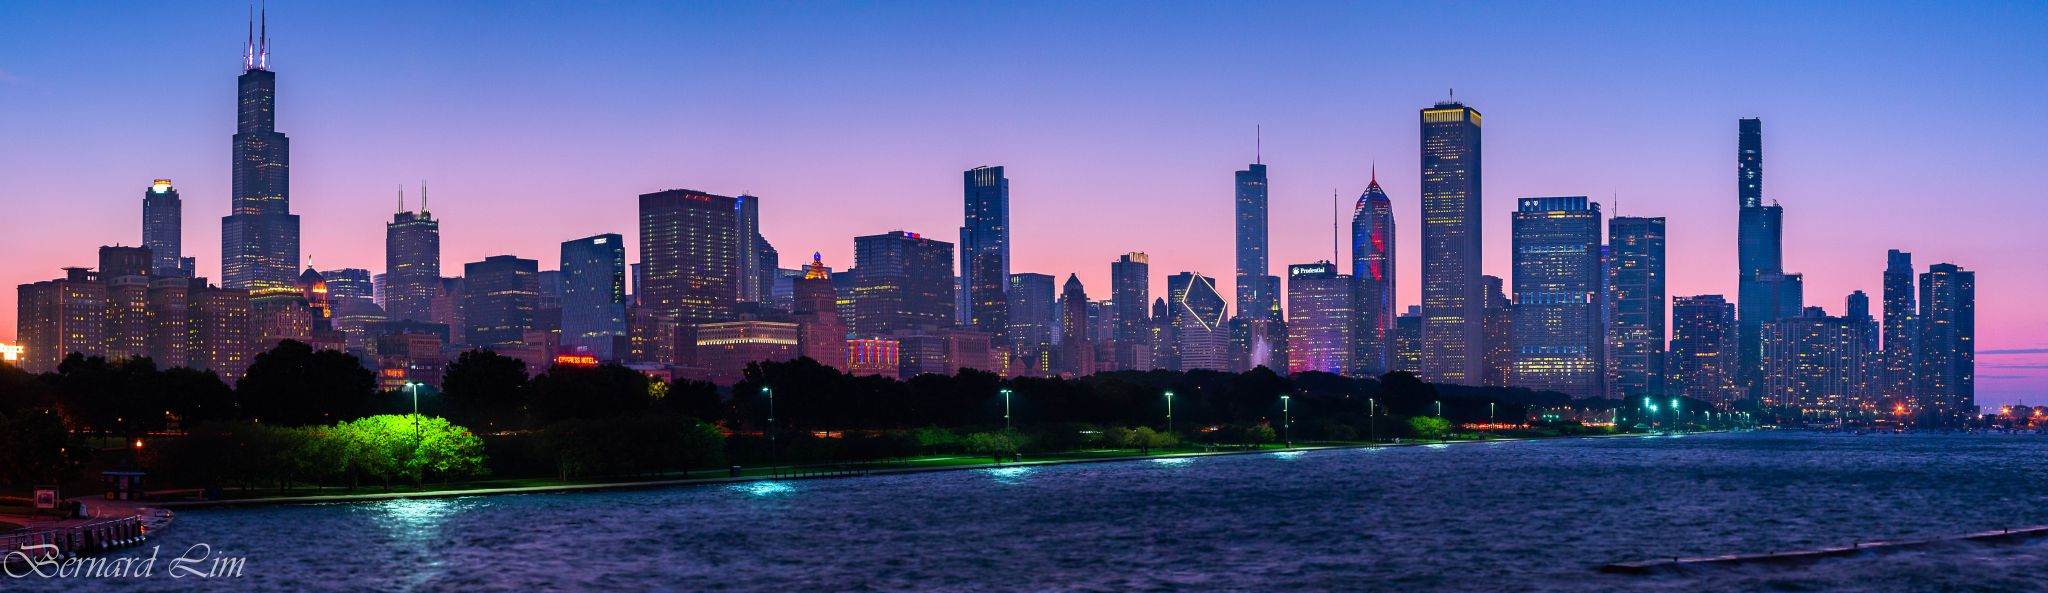 Chicago downtown from the Shedd Aquarium, USA